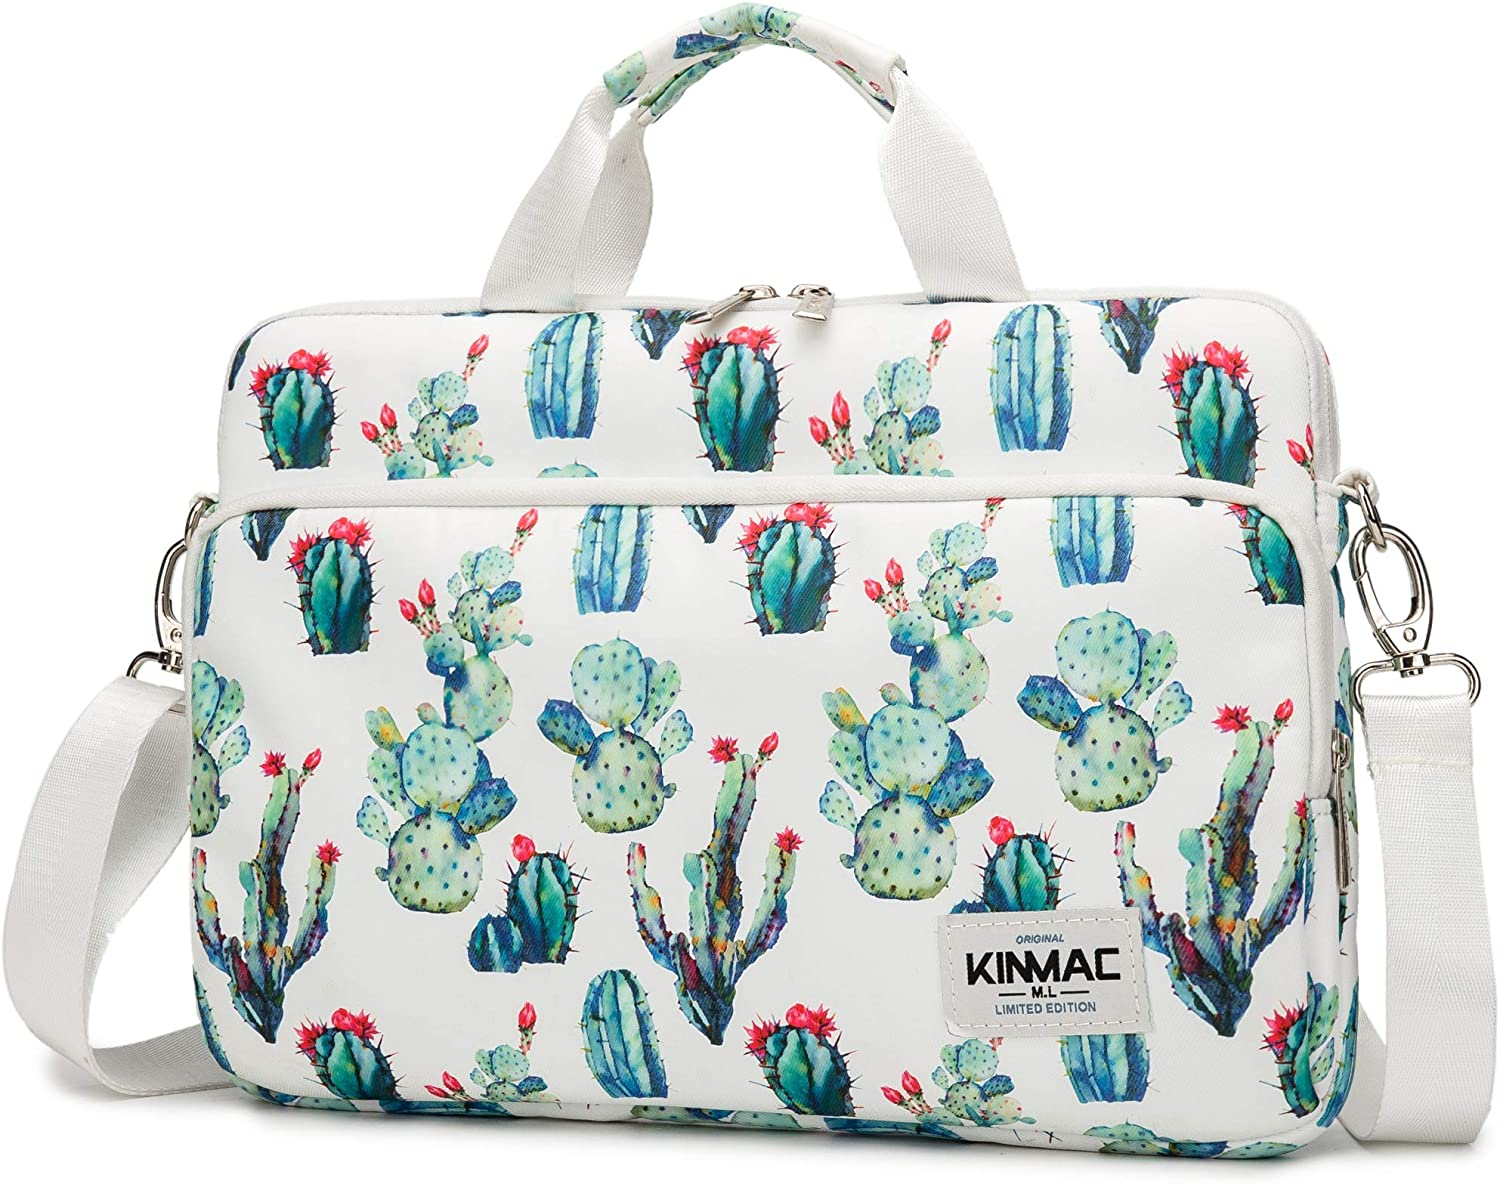 Kinmac 360° Protective Water Resistant Laptop Sleeve Bag Case with Handle and Detachable Shoulder (14 inch, Cactus)